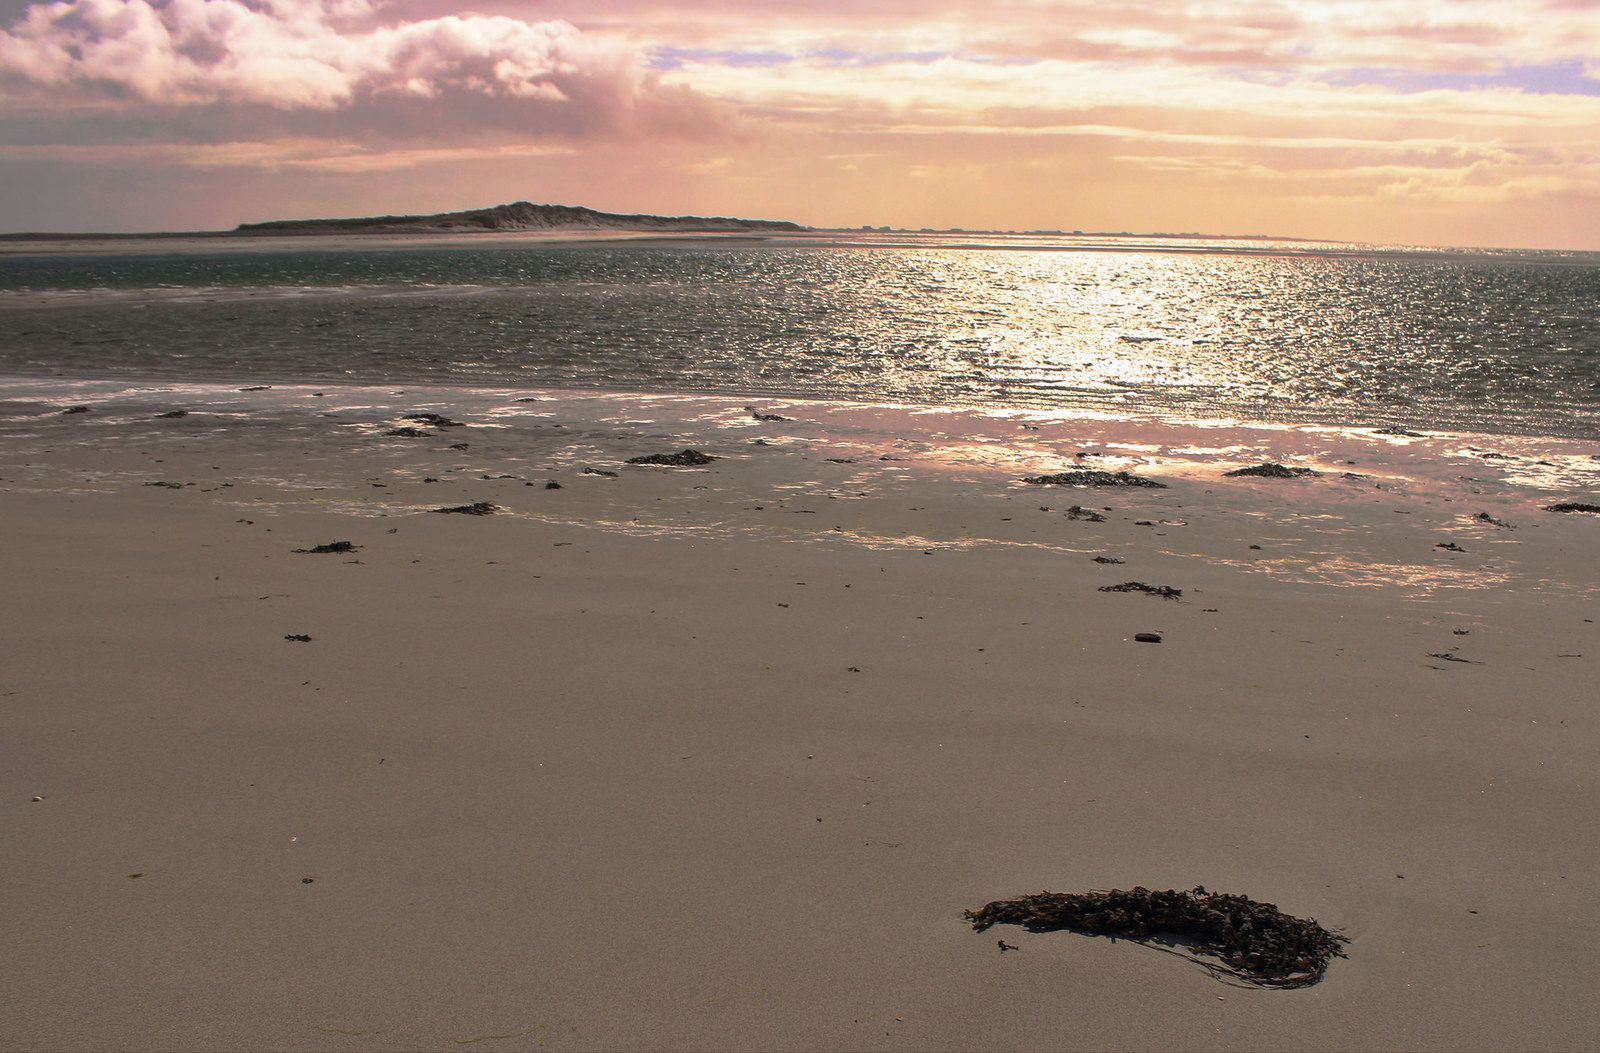 Let's all relocate to Eriskay, start a sheep farm, and wait for everything to blow over.